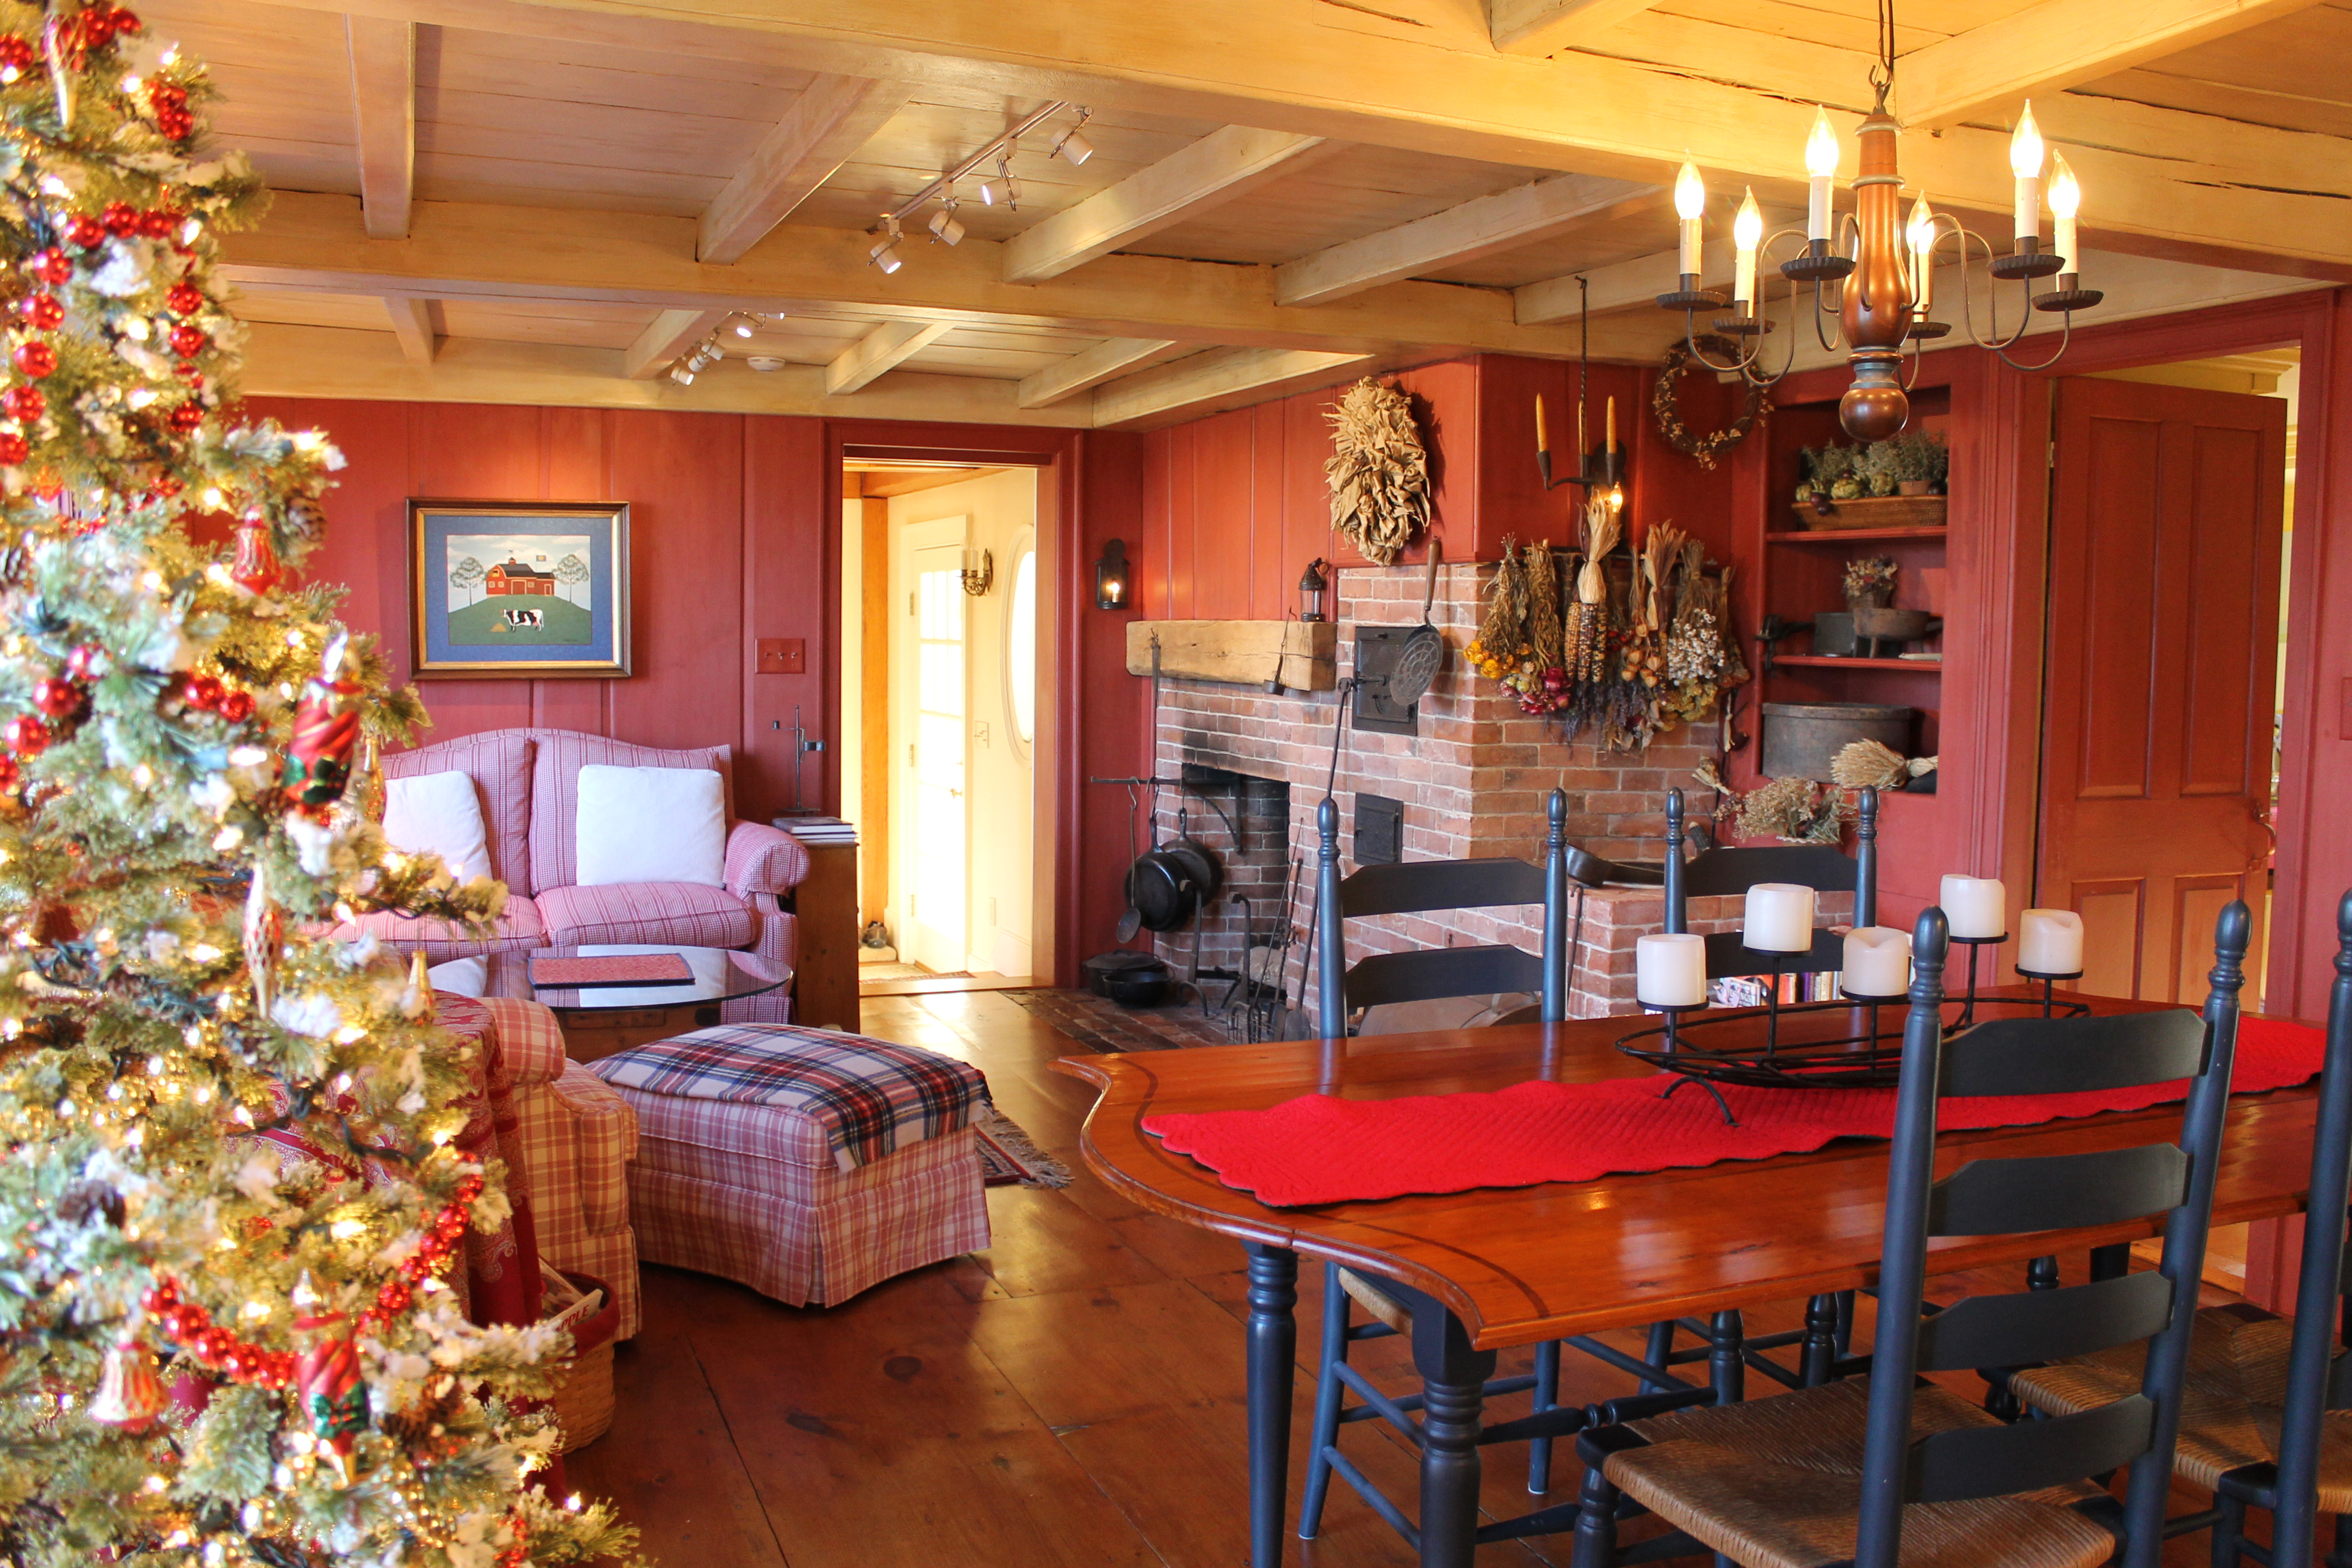 Our Christmas Kitchen Is Filled With Sweet Smells | Back ...